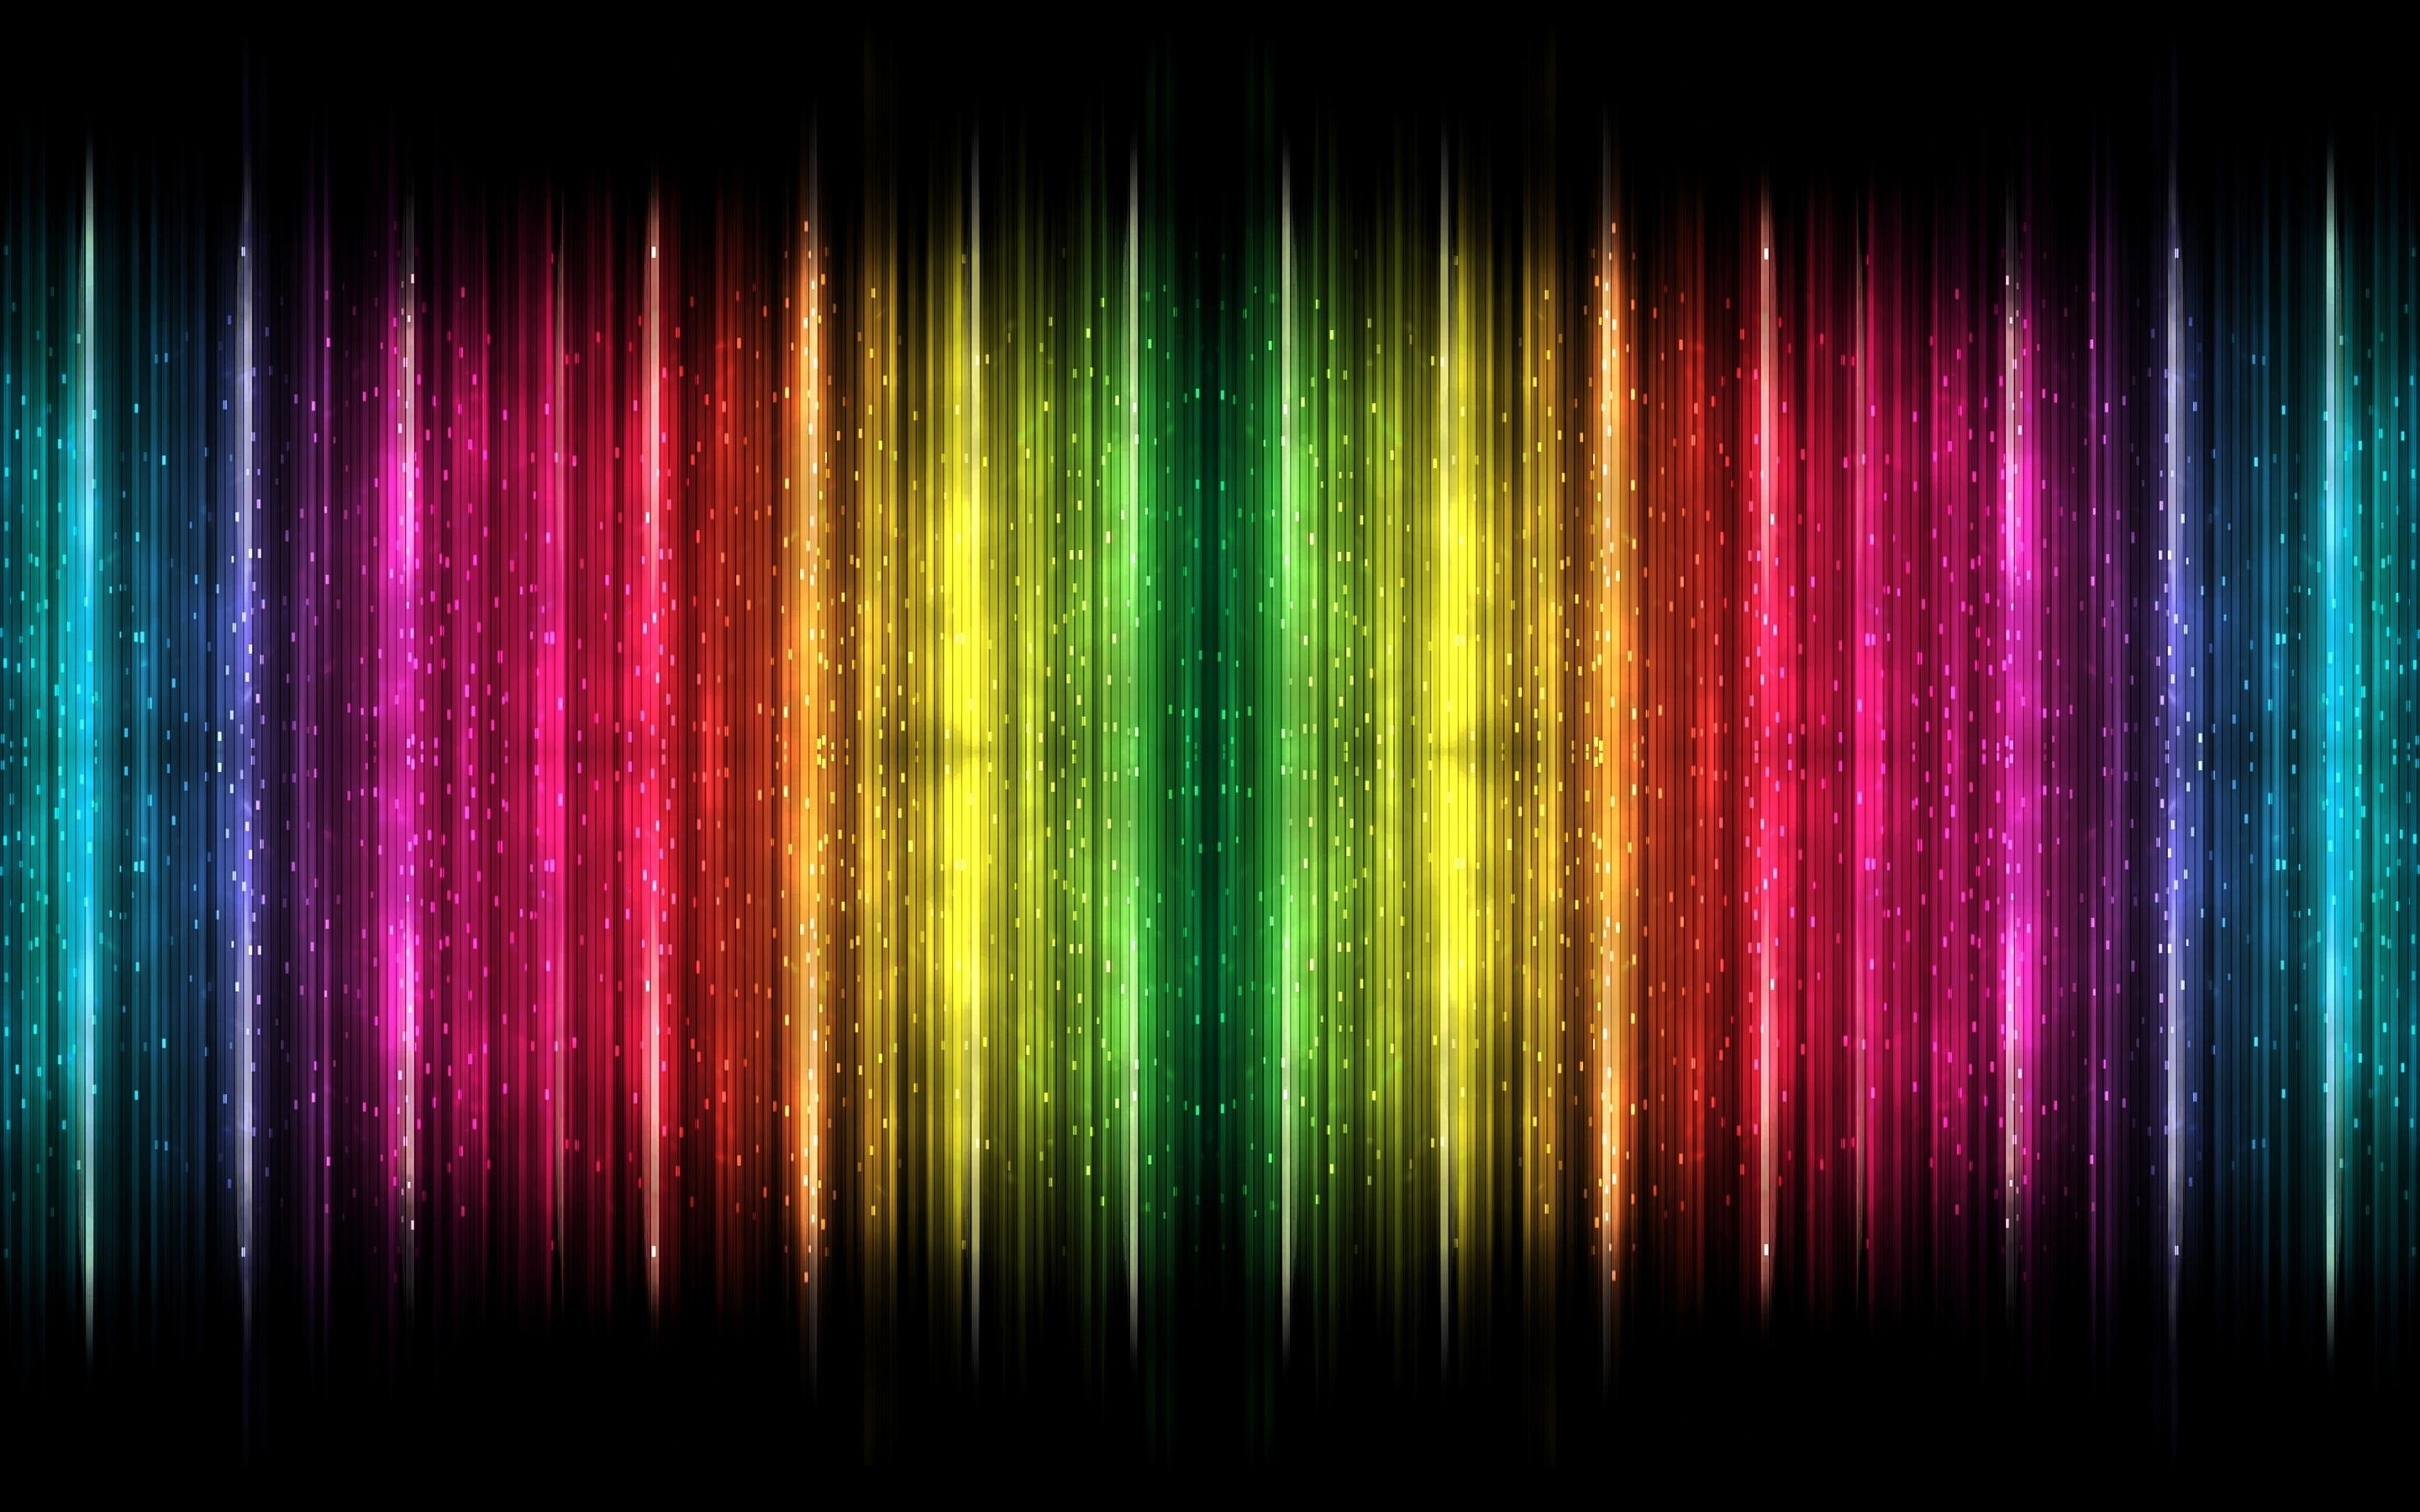 2880x1800 wallpaper rainbows abstract images